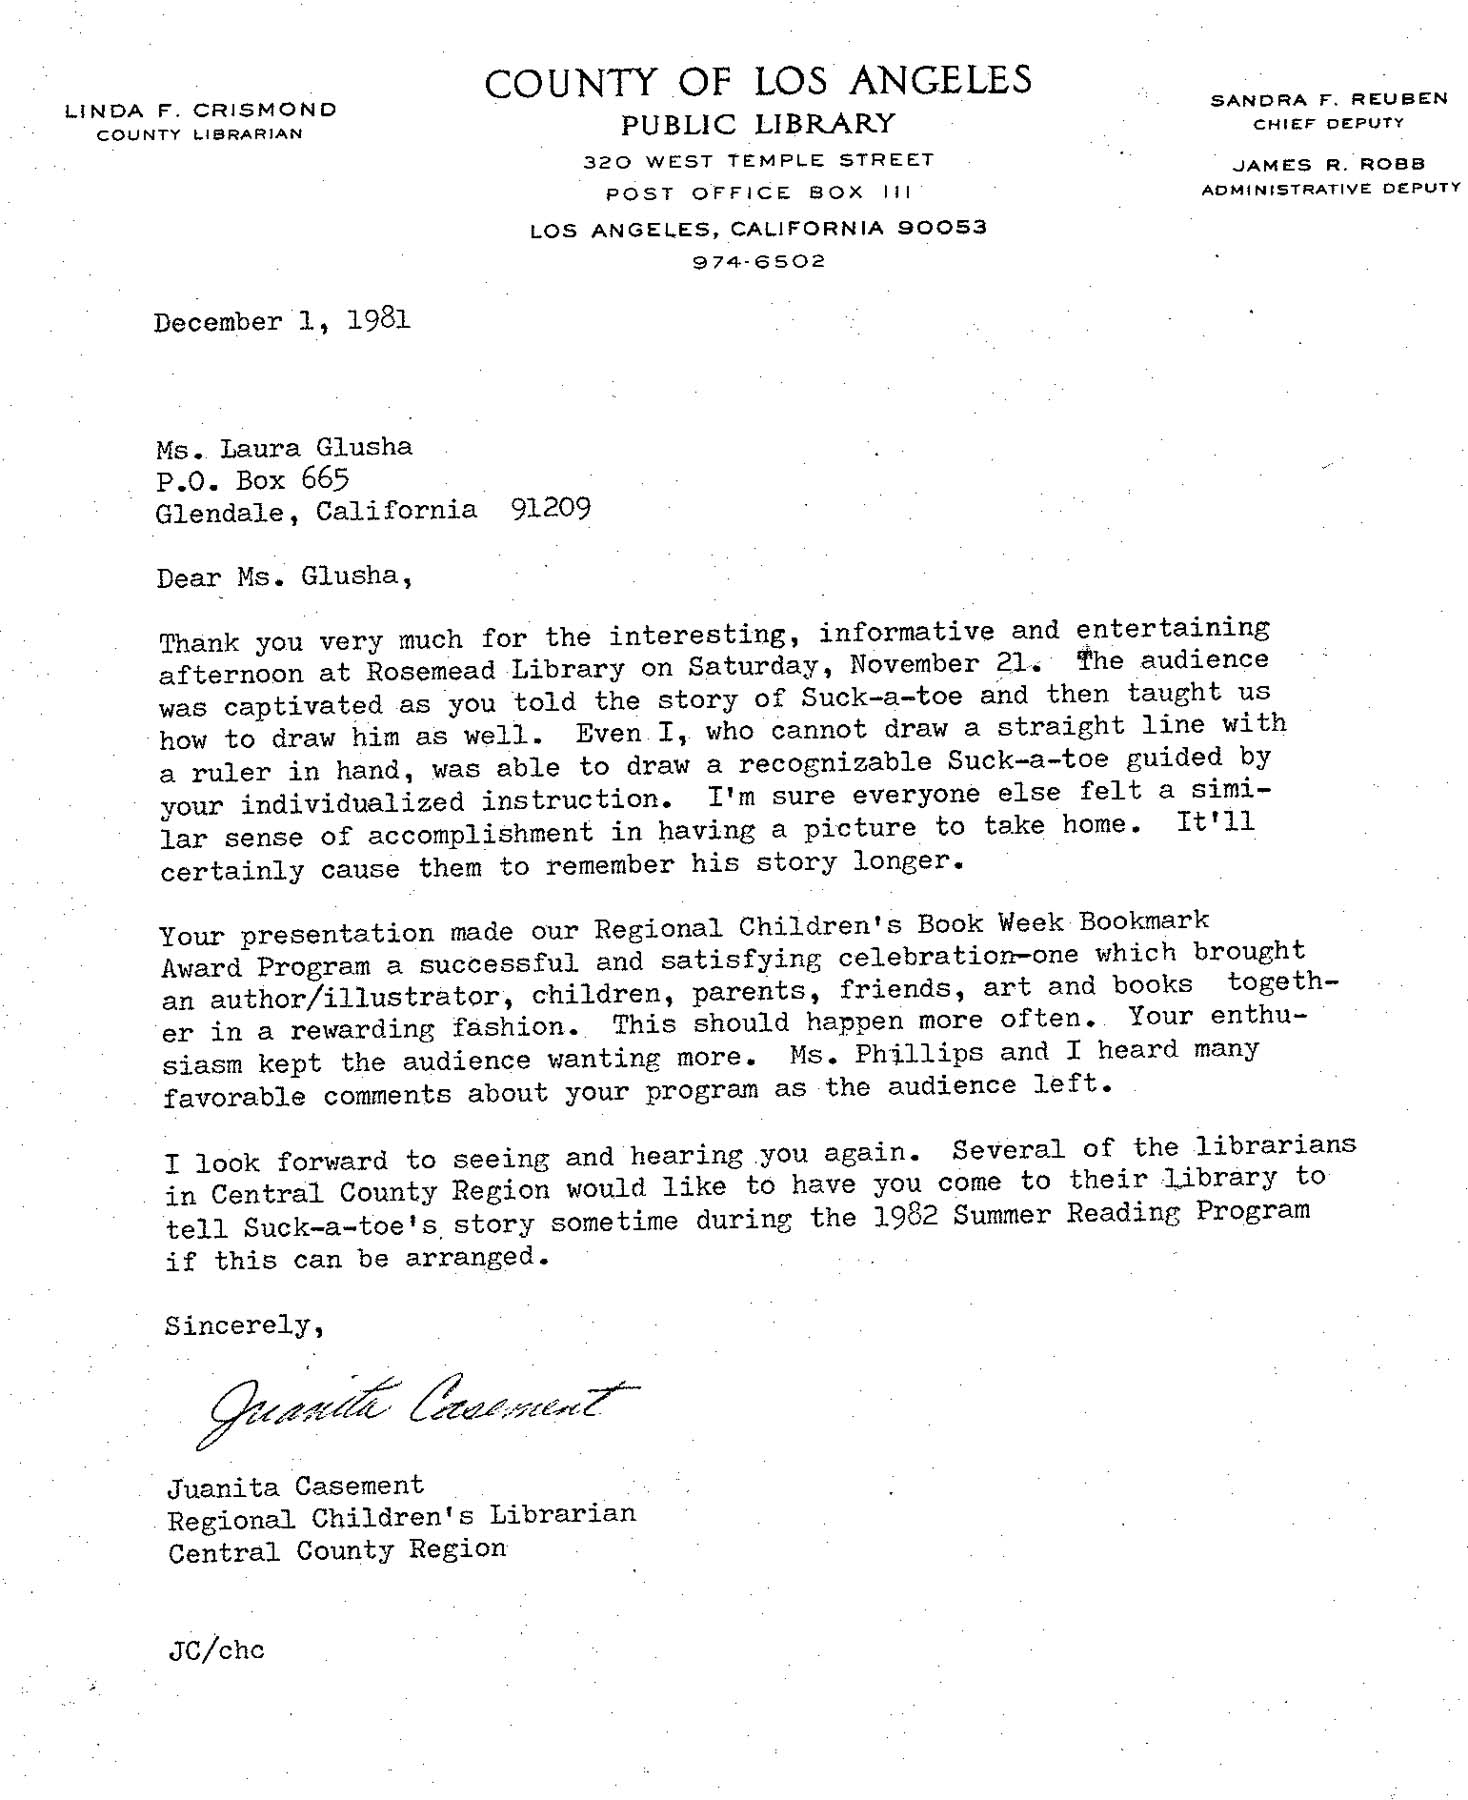 Letter of Appreciation: County of Los Angeles Public Library, 1 December 1981